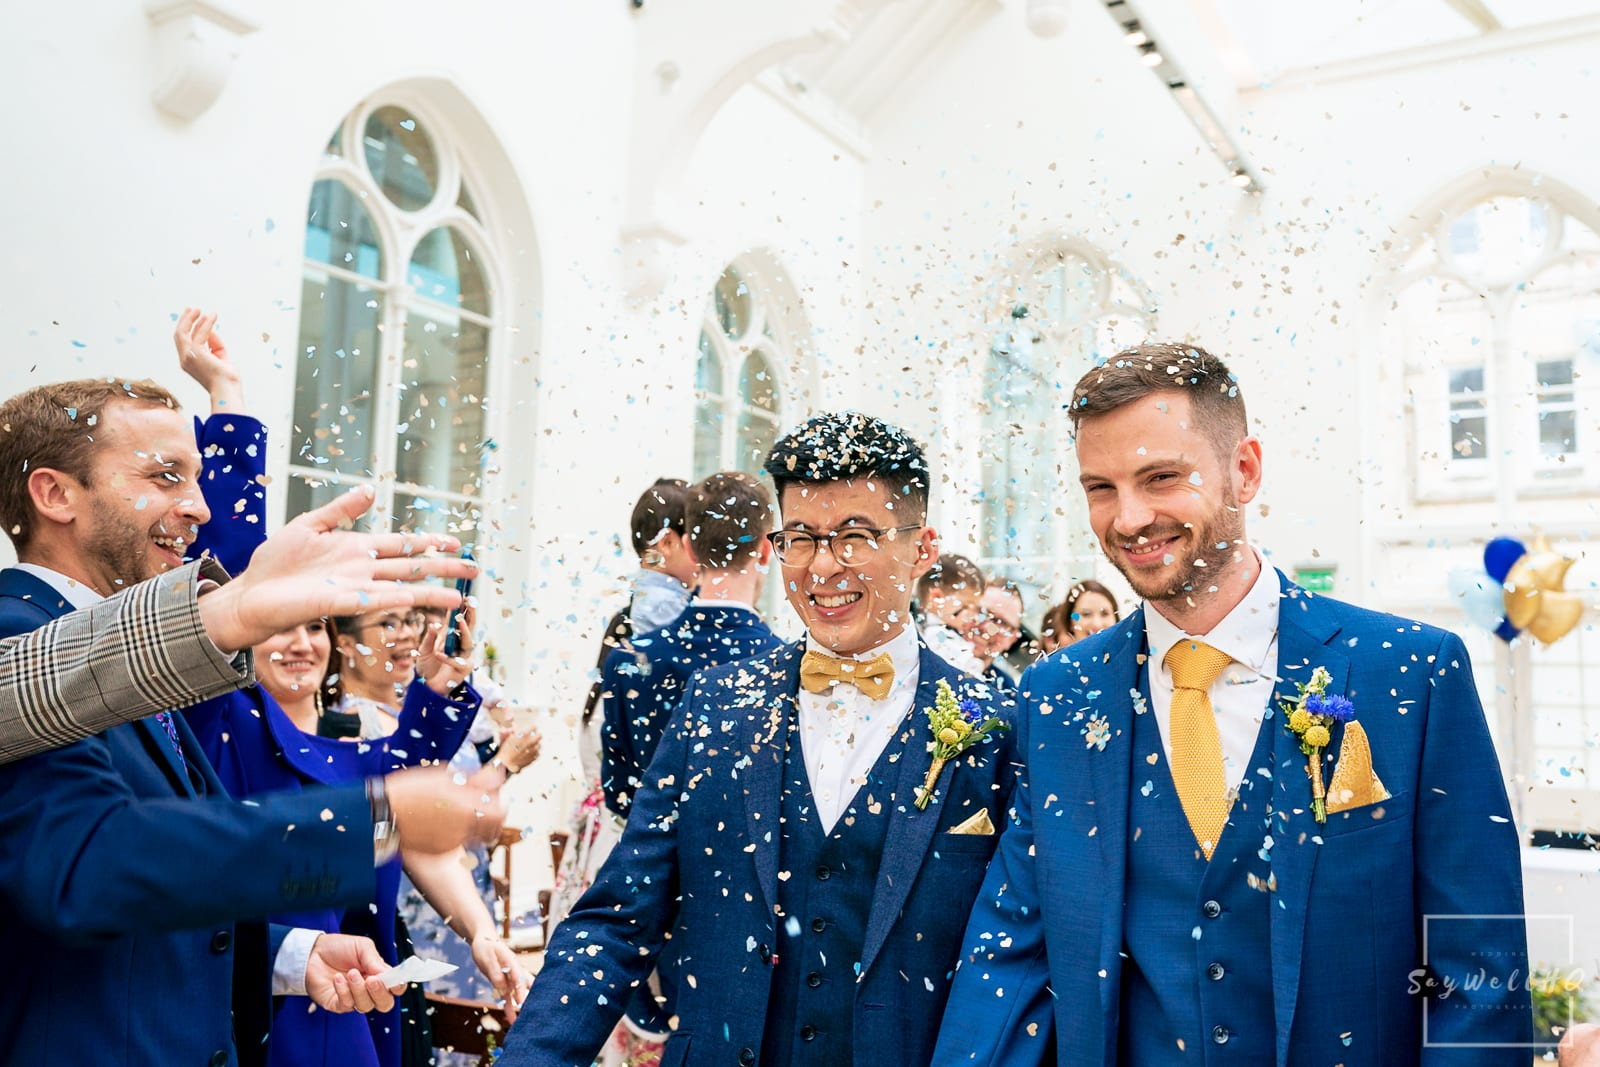 Nottingham Same sex wedding photographer specialising in candid, natural, relaxed and unposed documentary wedding photography